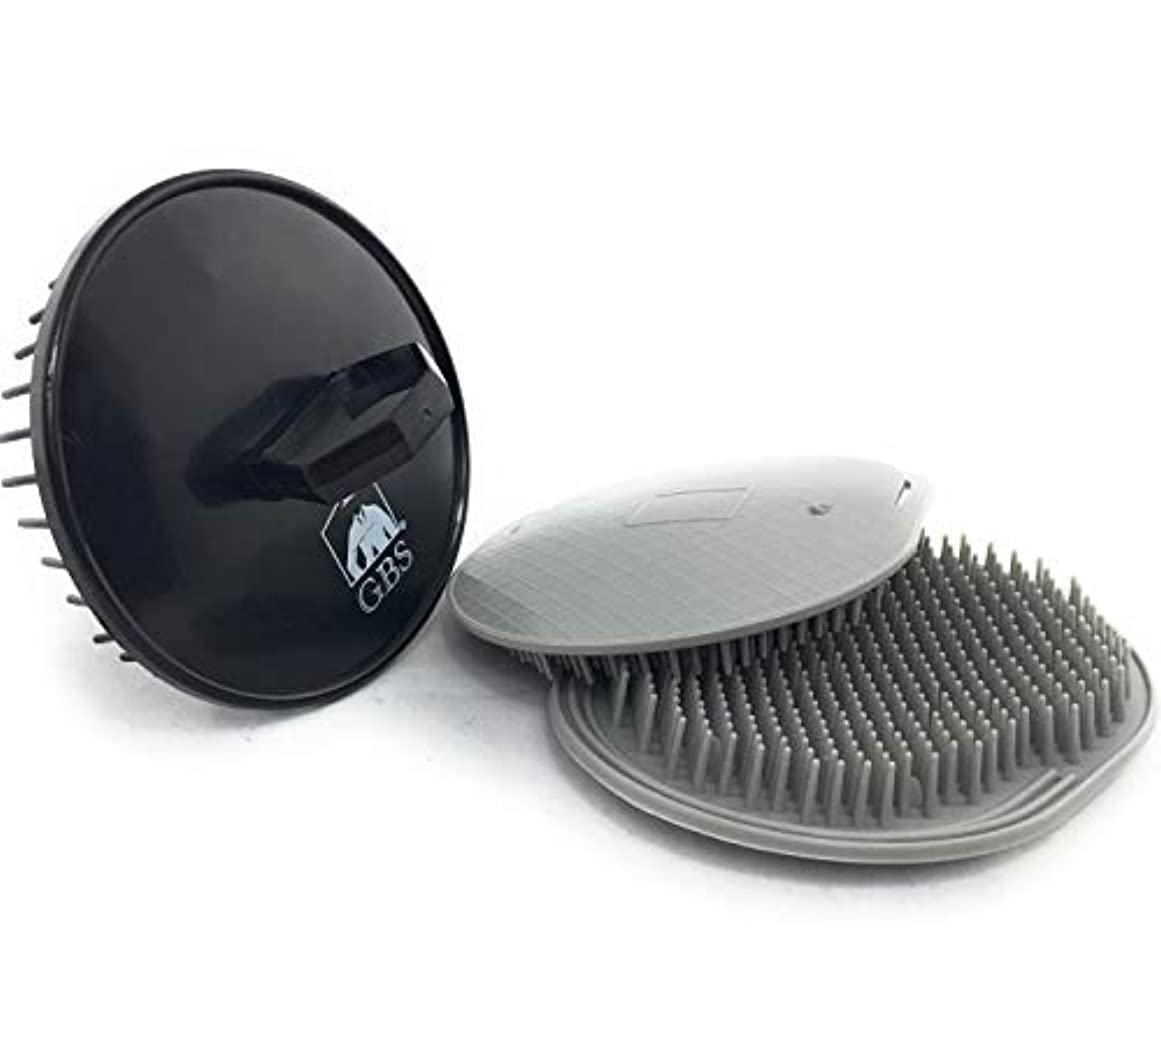 銃ラック不忠GBS Soft Pocket Palm Brush. Massage and Head Scratcher. Made In USA 2-Pack - Gray Plus 1 Black Shampoo Brush -...